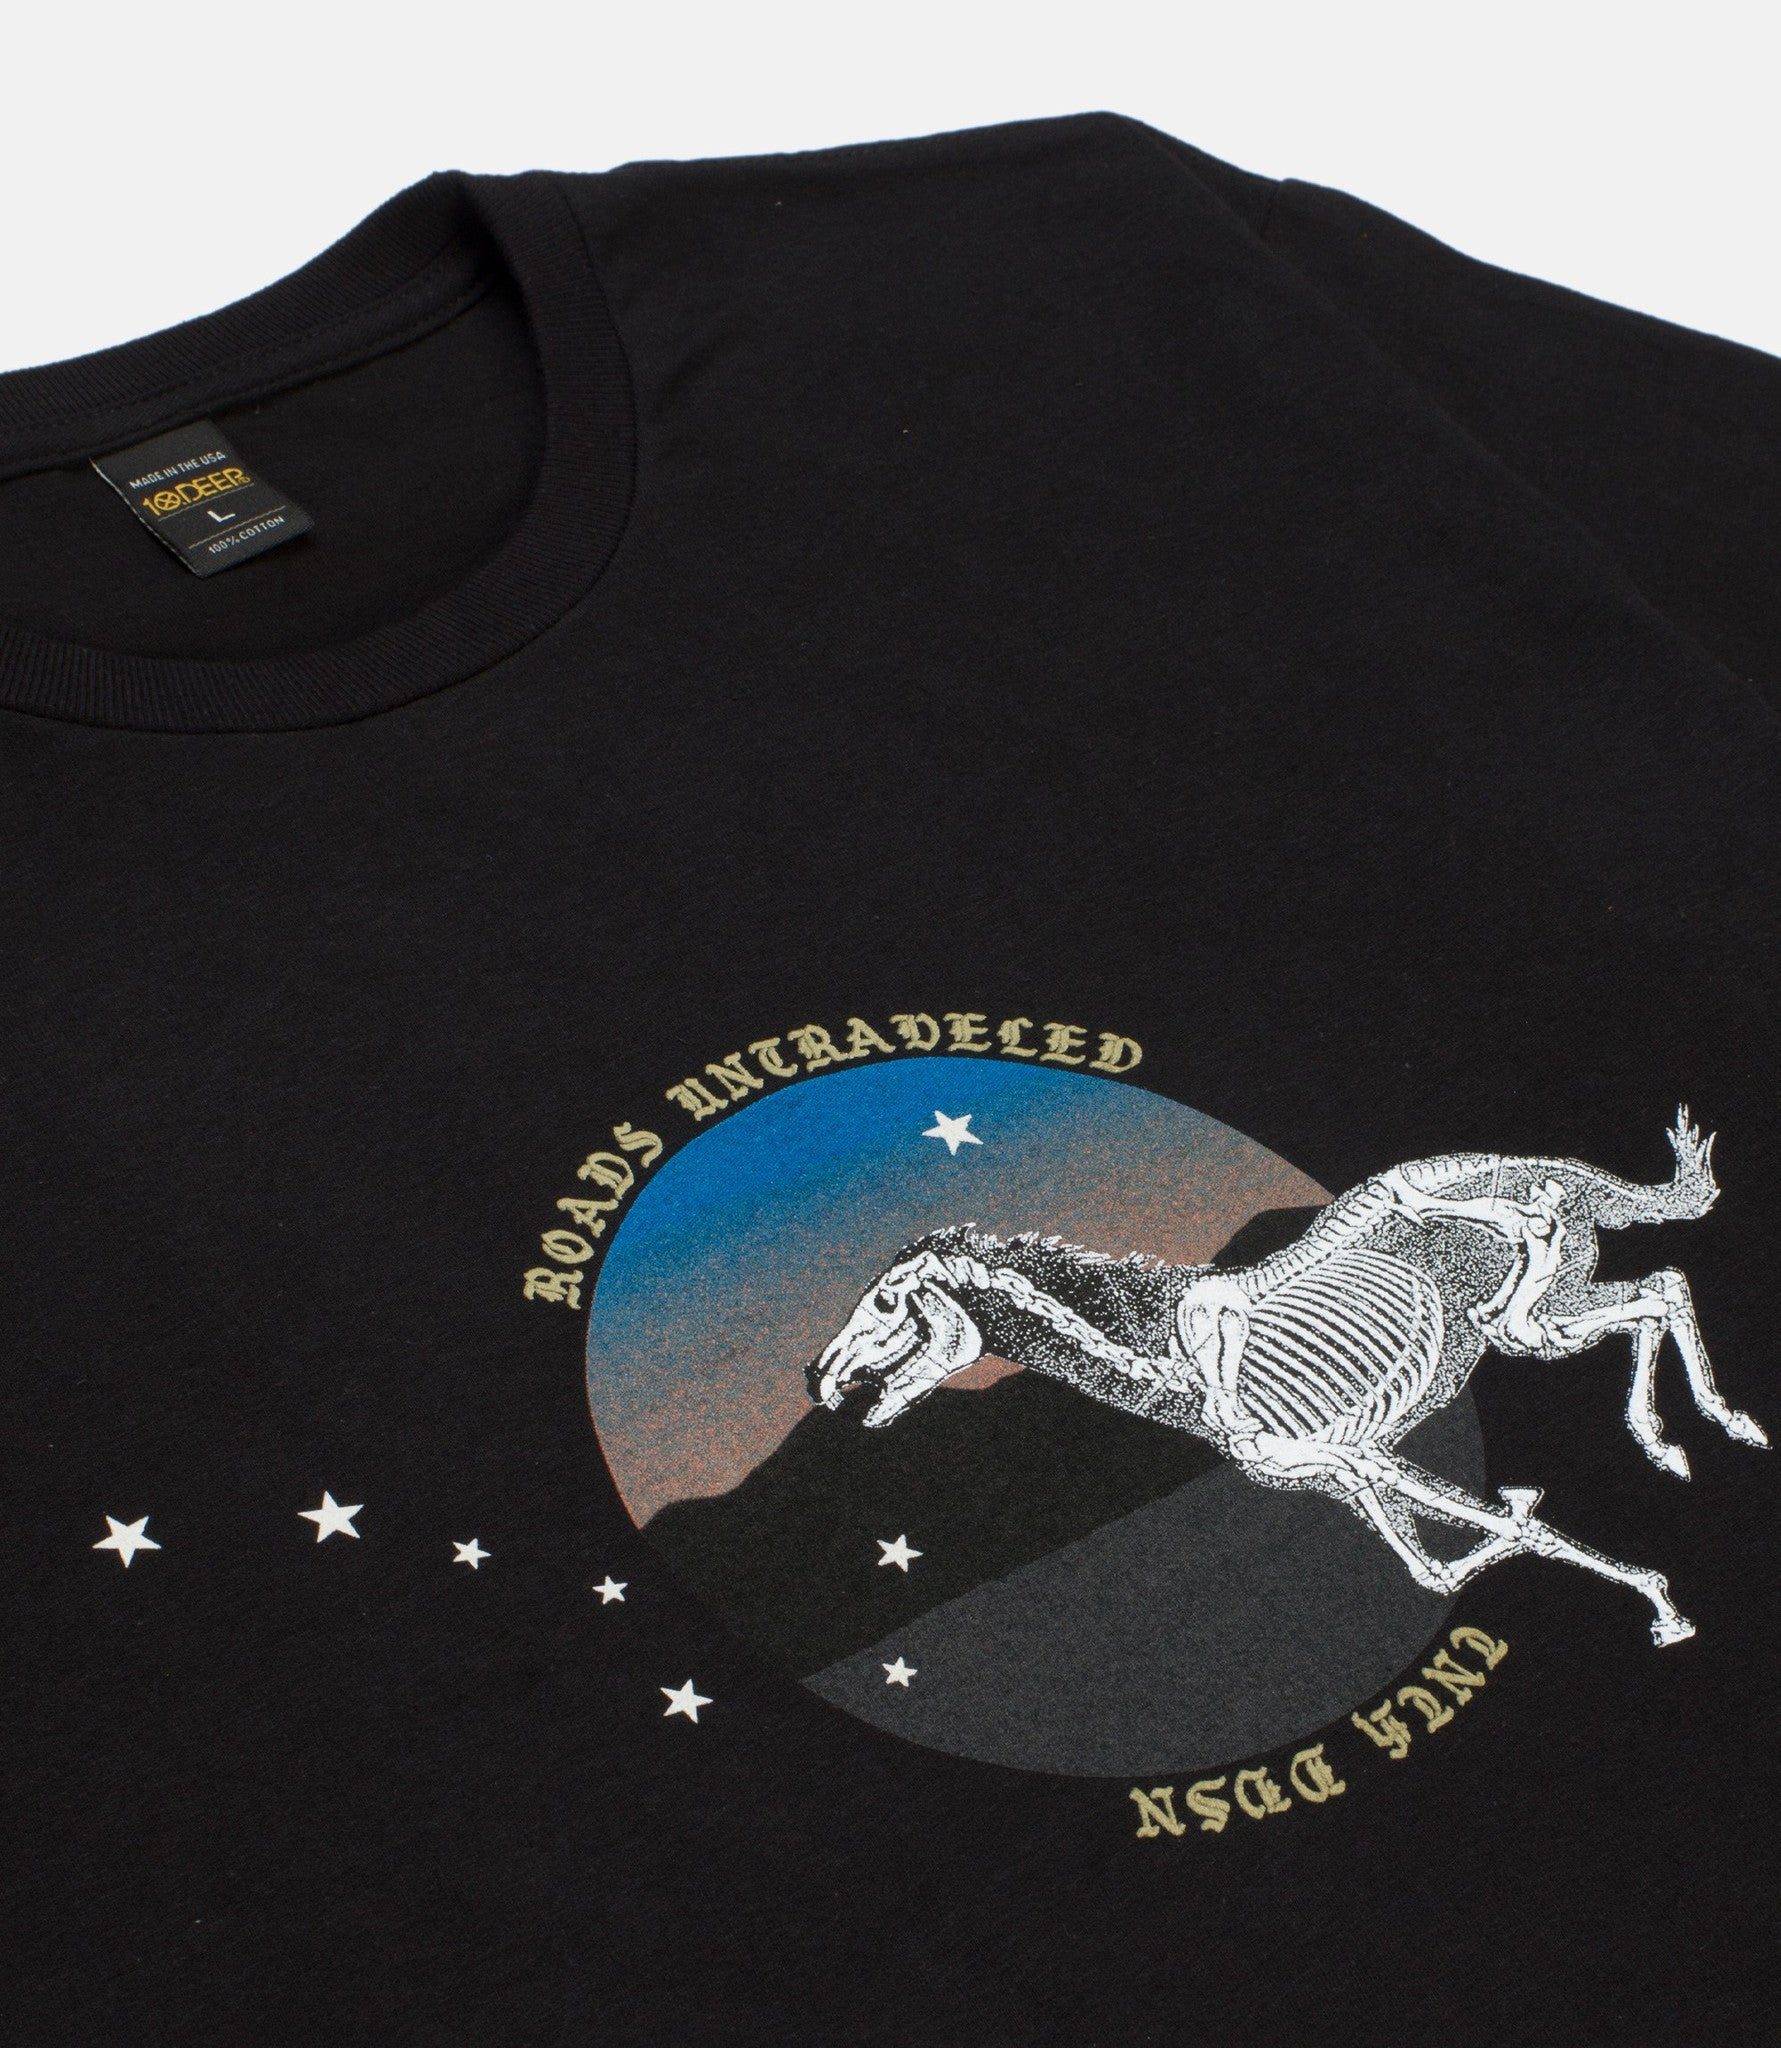 10Deep - Riding With Death Men's Tee, Black - The Giant Peach